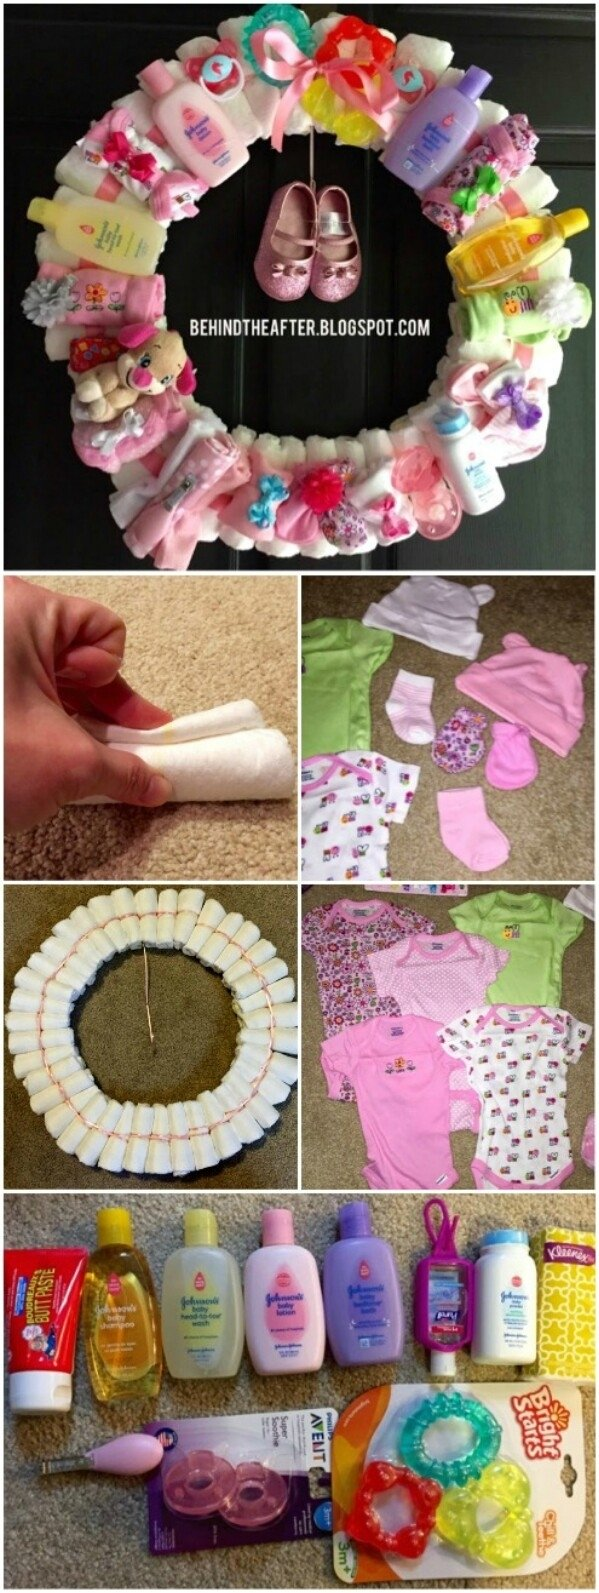 10 Pretty Diaper Ideas For Baby Shower Gift 25 enchantingly adorable baby shower gift ideas that will make you 1 2020